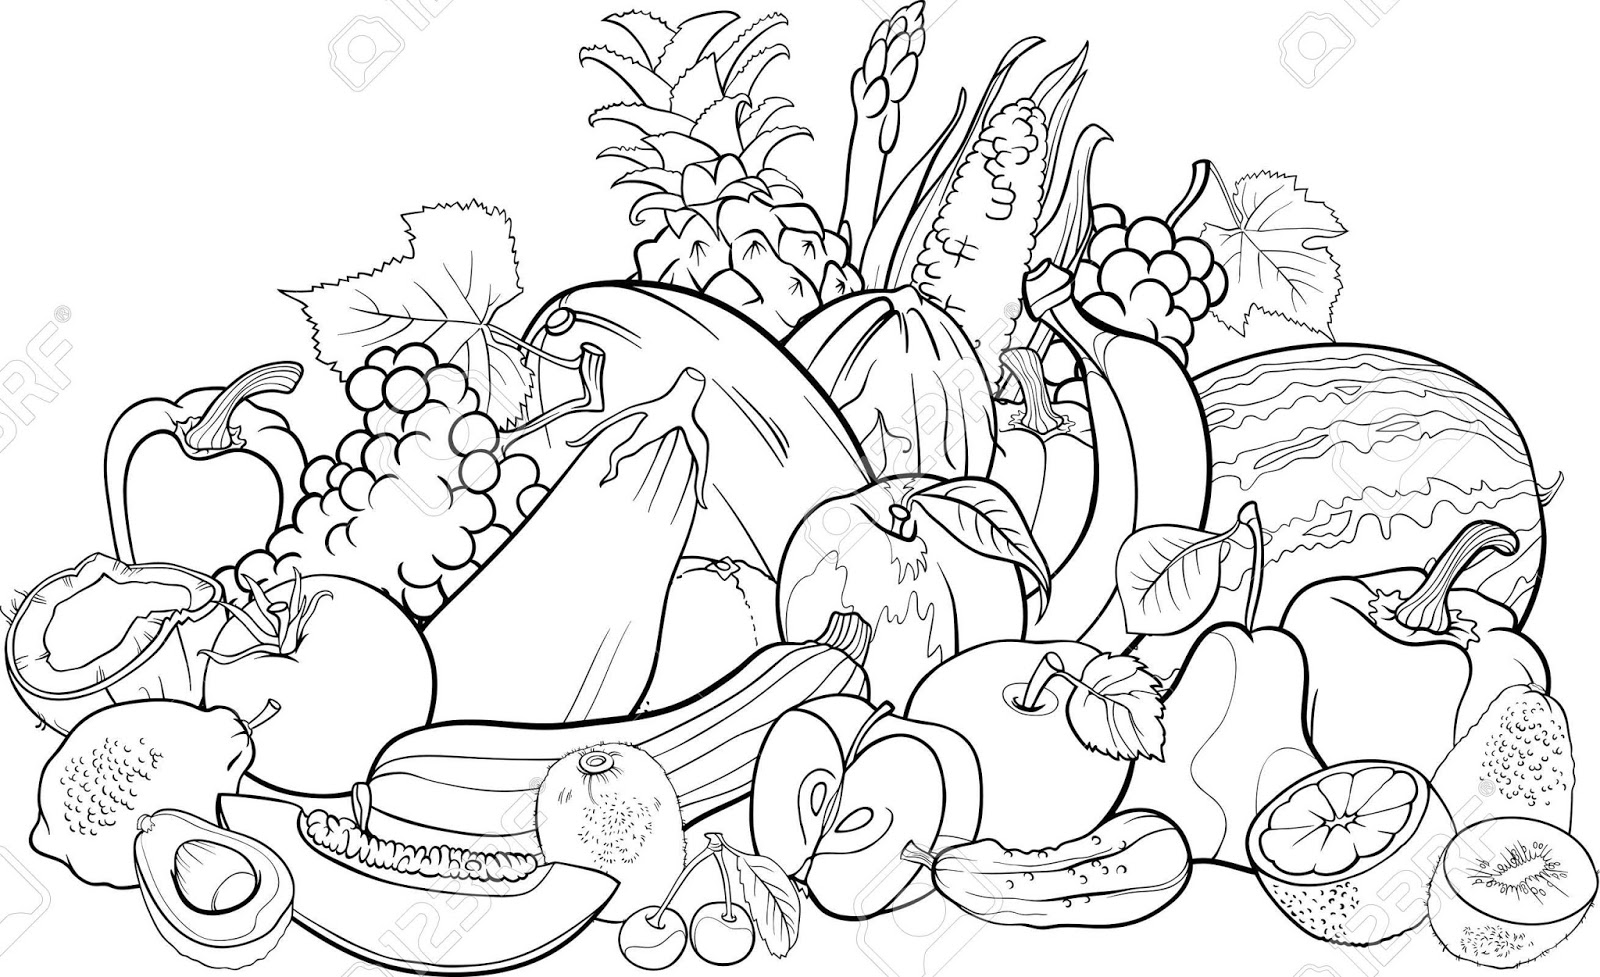 Free coloring pages vegetables and fruit - Fruits And Vegetables Big Group Coloring Pages For Kids